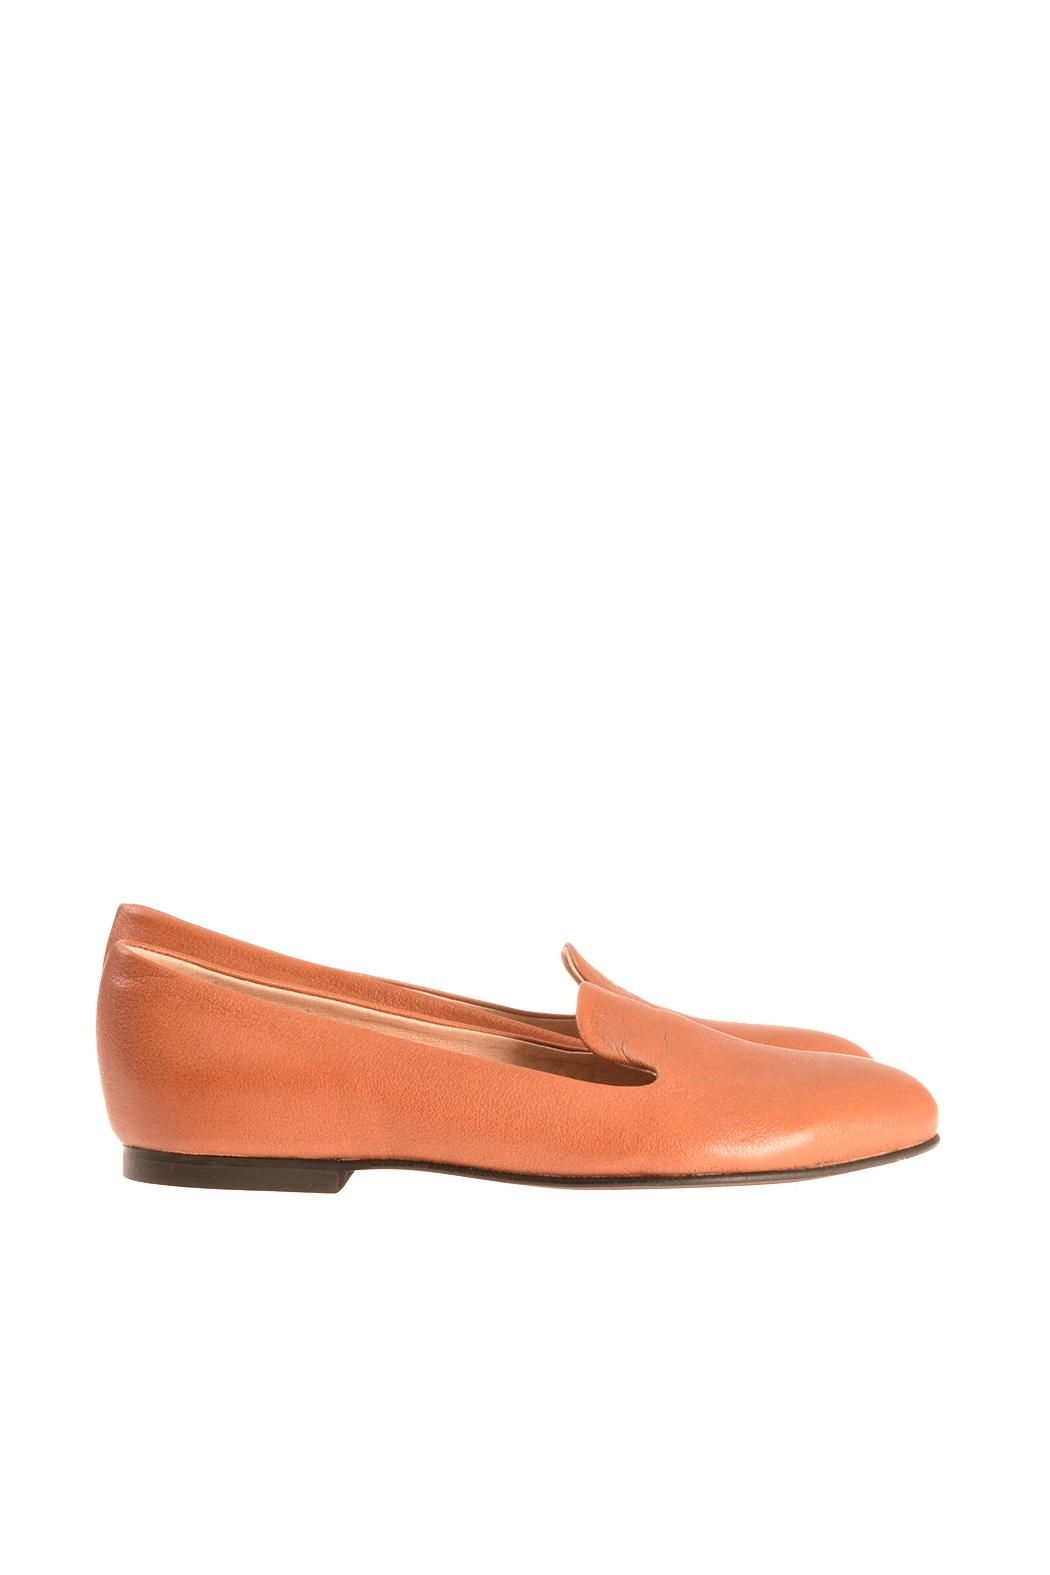 Bottega Bash Camel Leather Loafers - Back Cropped Image